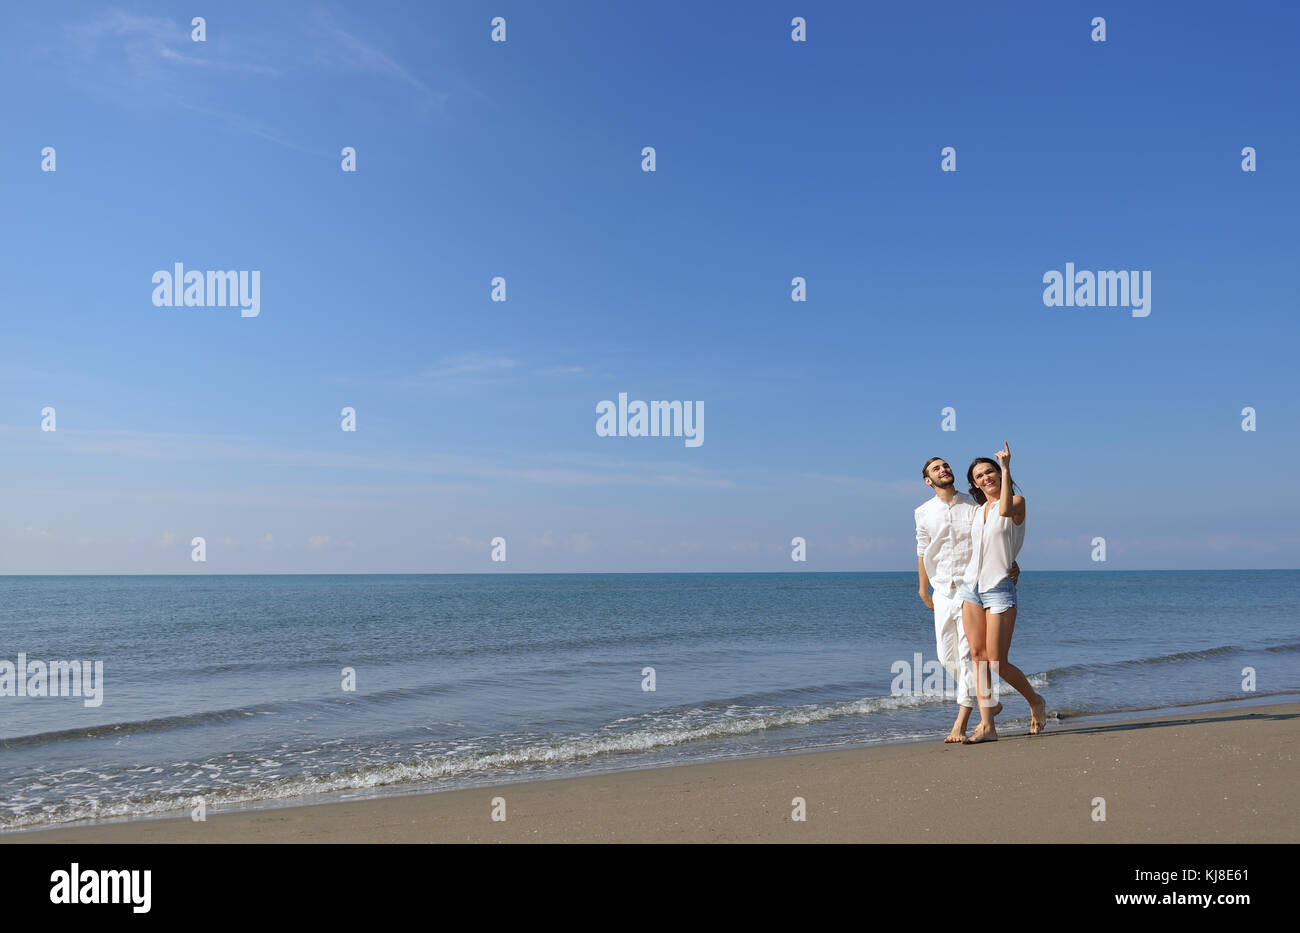 Beach couple walking on romantic travel honeymoon vacation summer holidays romance. - Stock Image